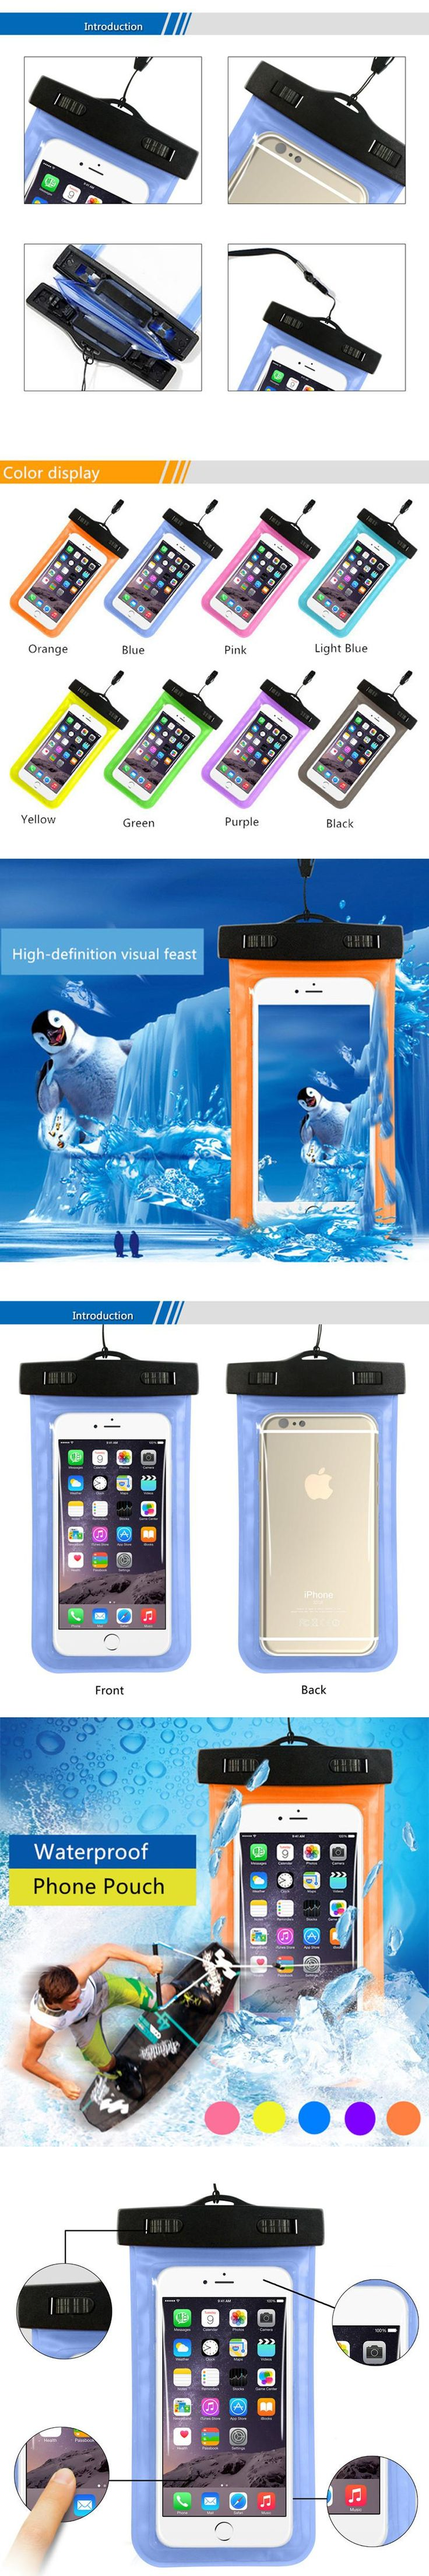 Universal Phone Bags Pouch with Strap Waterproof Cases For iPhone 6 5S 6S 7 Plus Case Samsung Galaxy S6 S7 Edge S8 Plus Cover